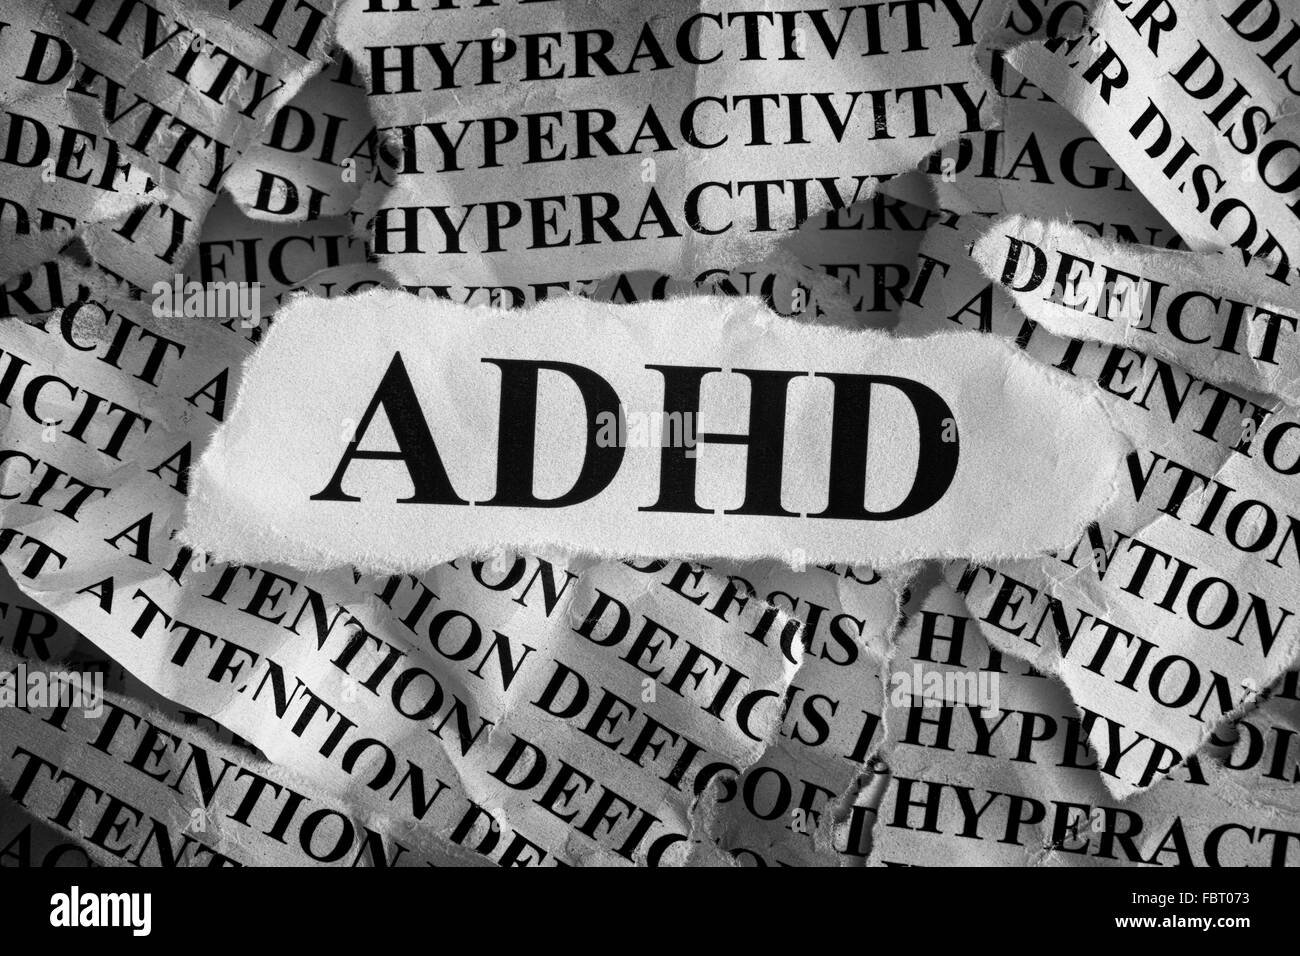 Torn pieces of paper with abbreviation ADHD. Concept Image. Black and White. ADHD is Attention deficit hyperactivity - Stock Image